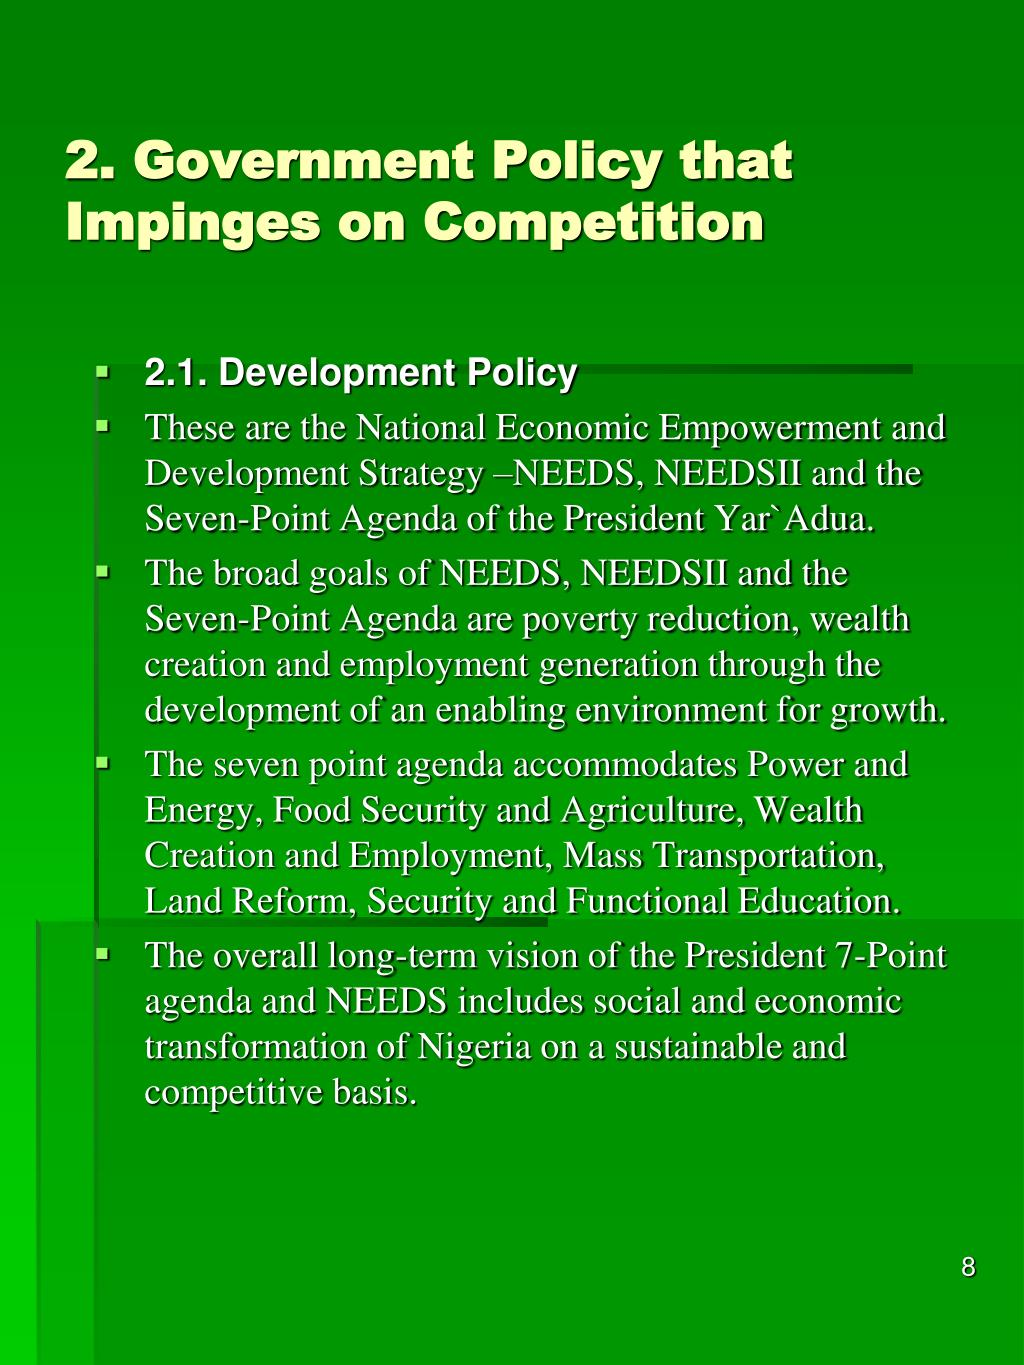 2. Government Policy that Impinges on Competition